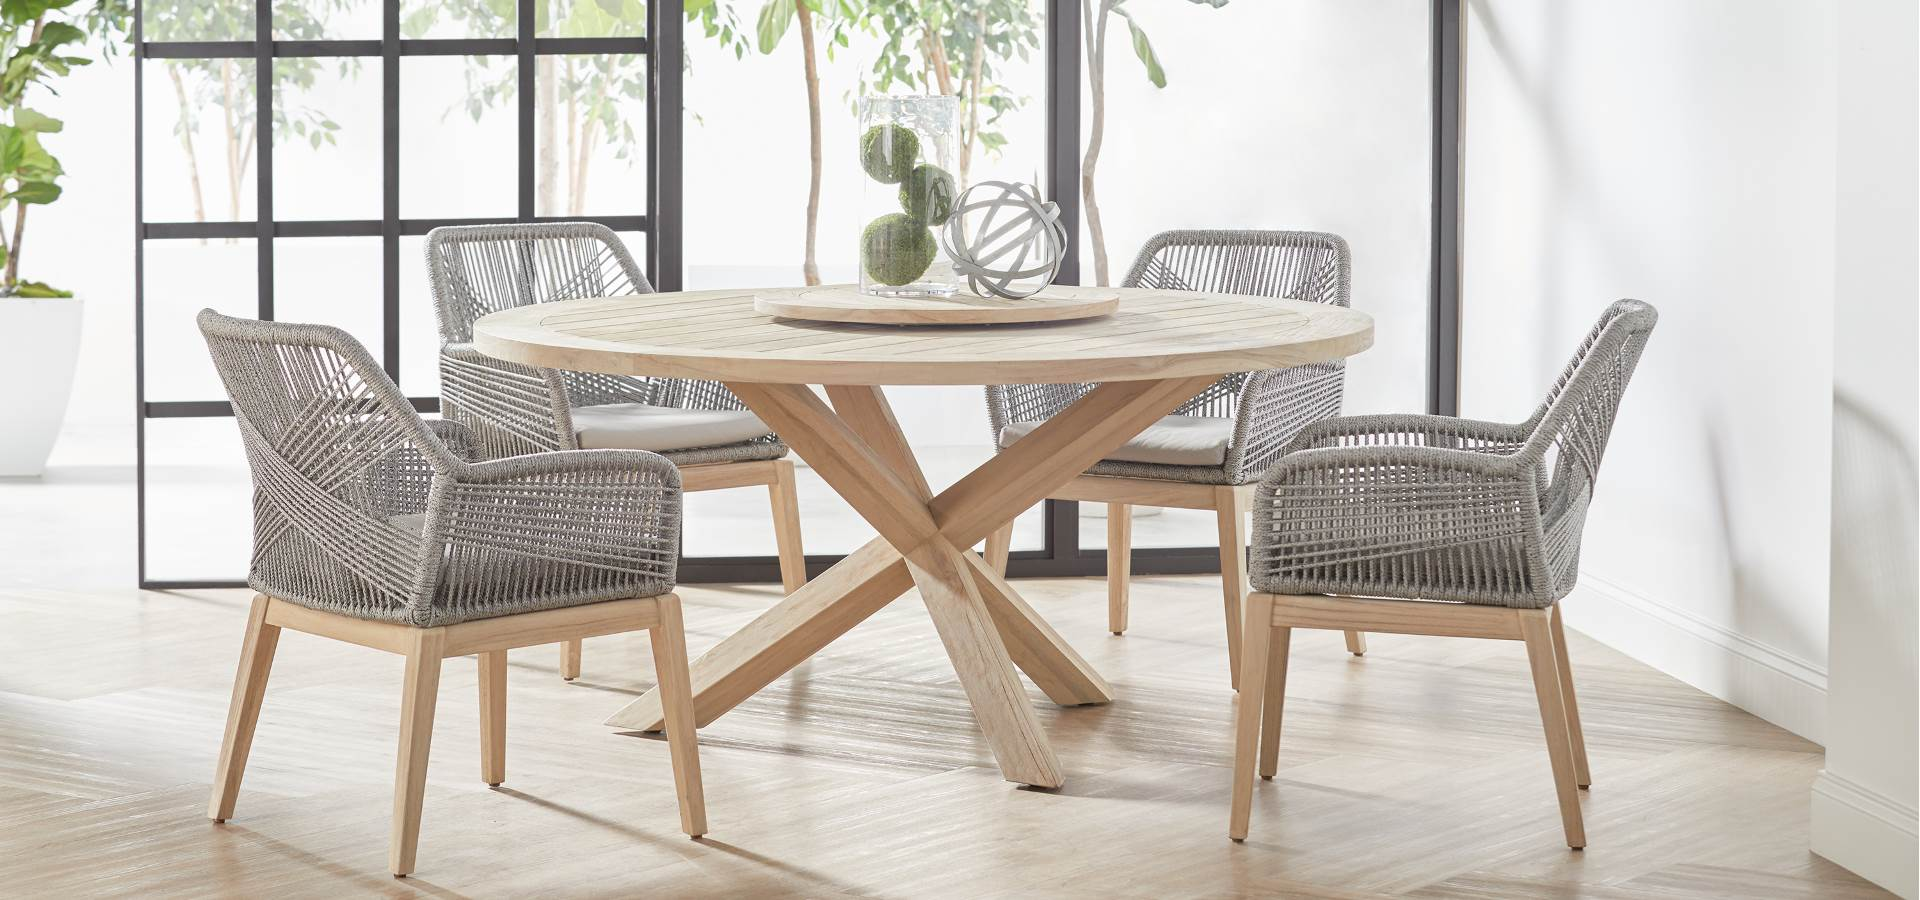 ESSENTIALS FOR LIVING   Loom Arm Chair  and  Boca Outdoor Round Dining Table